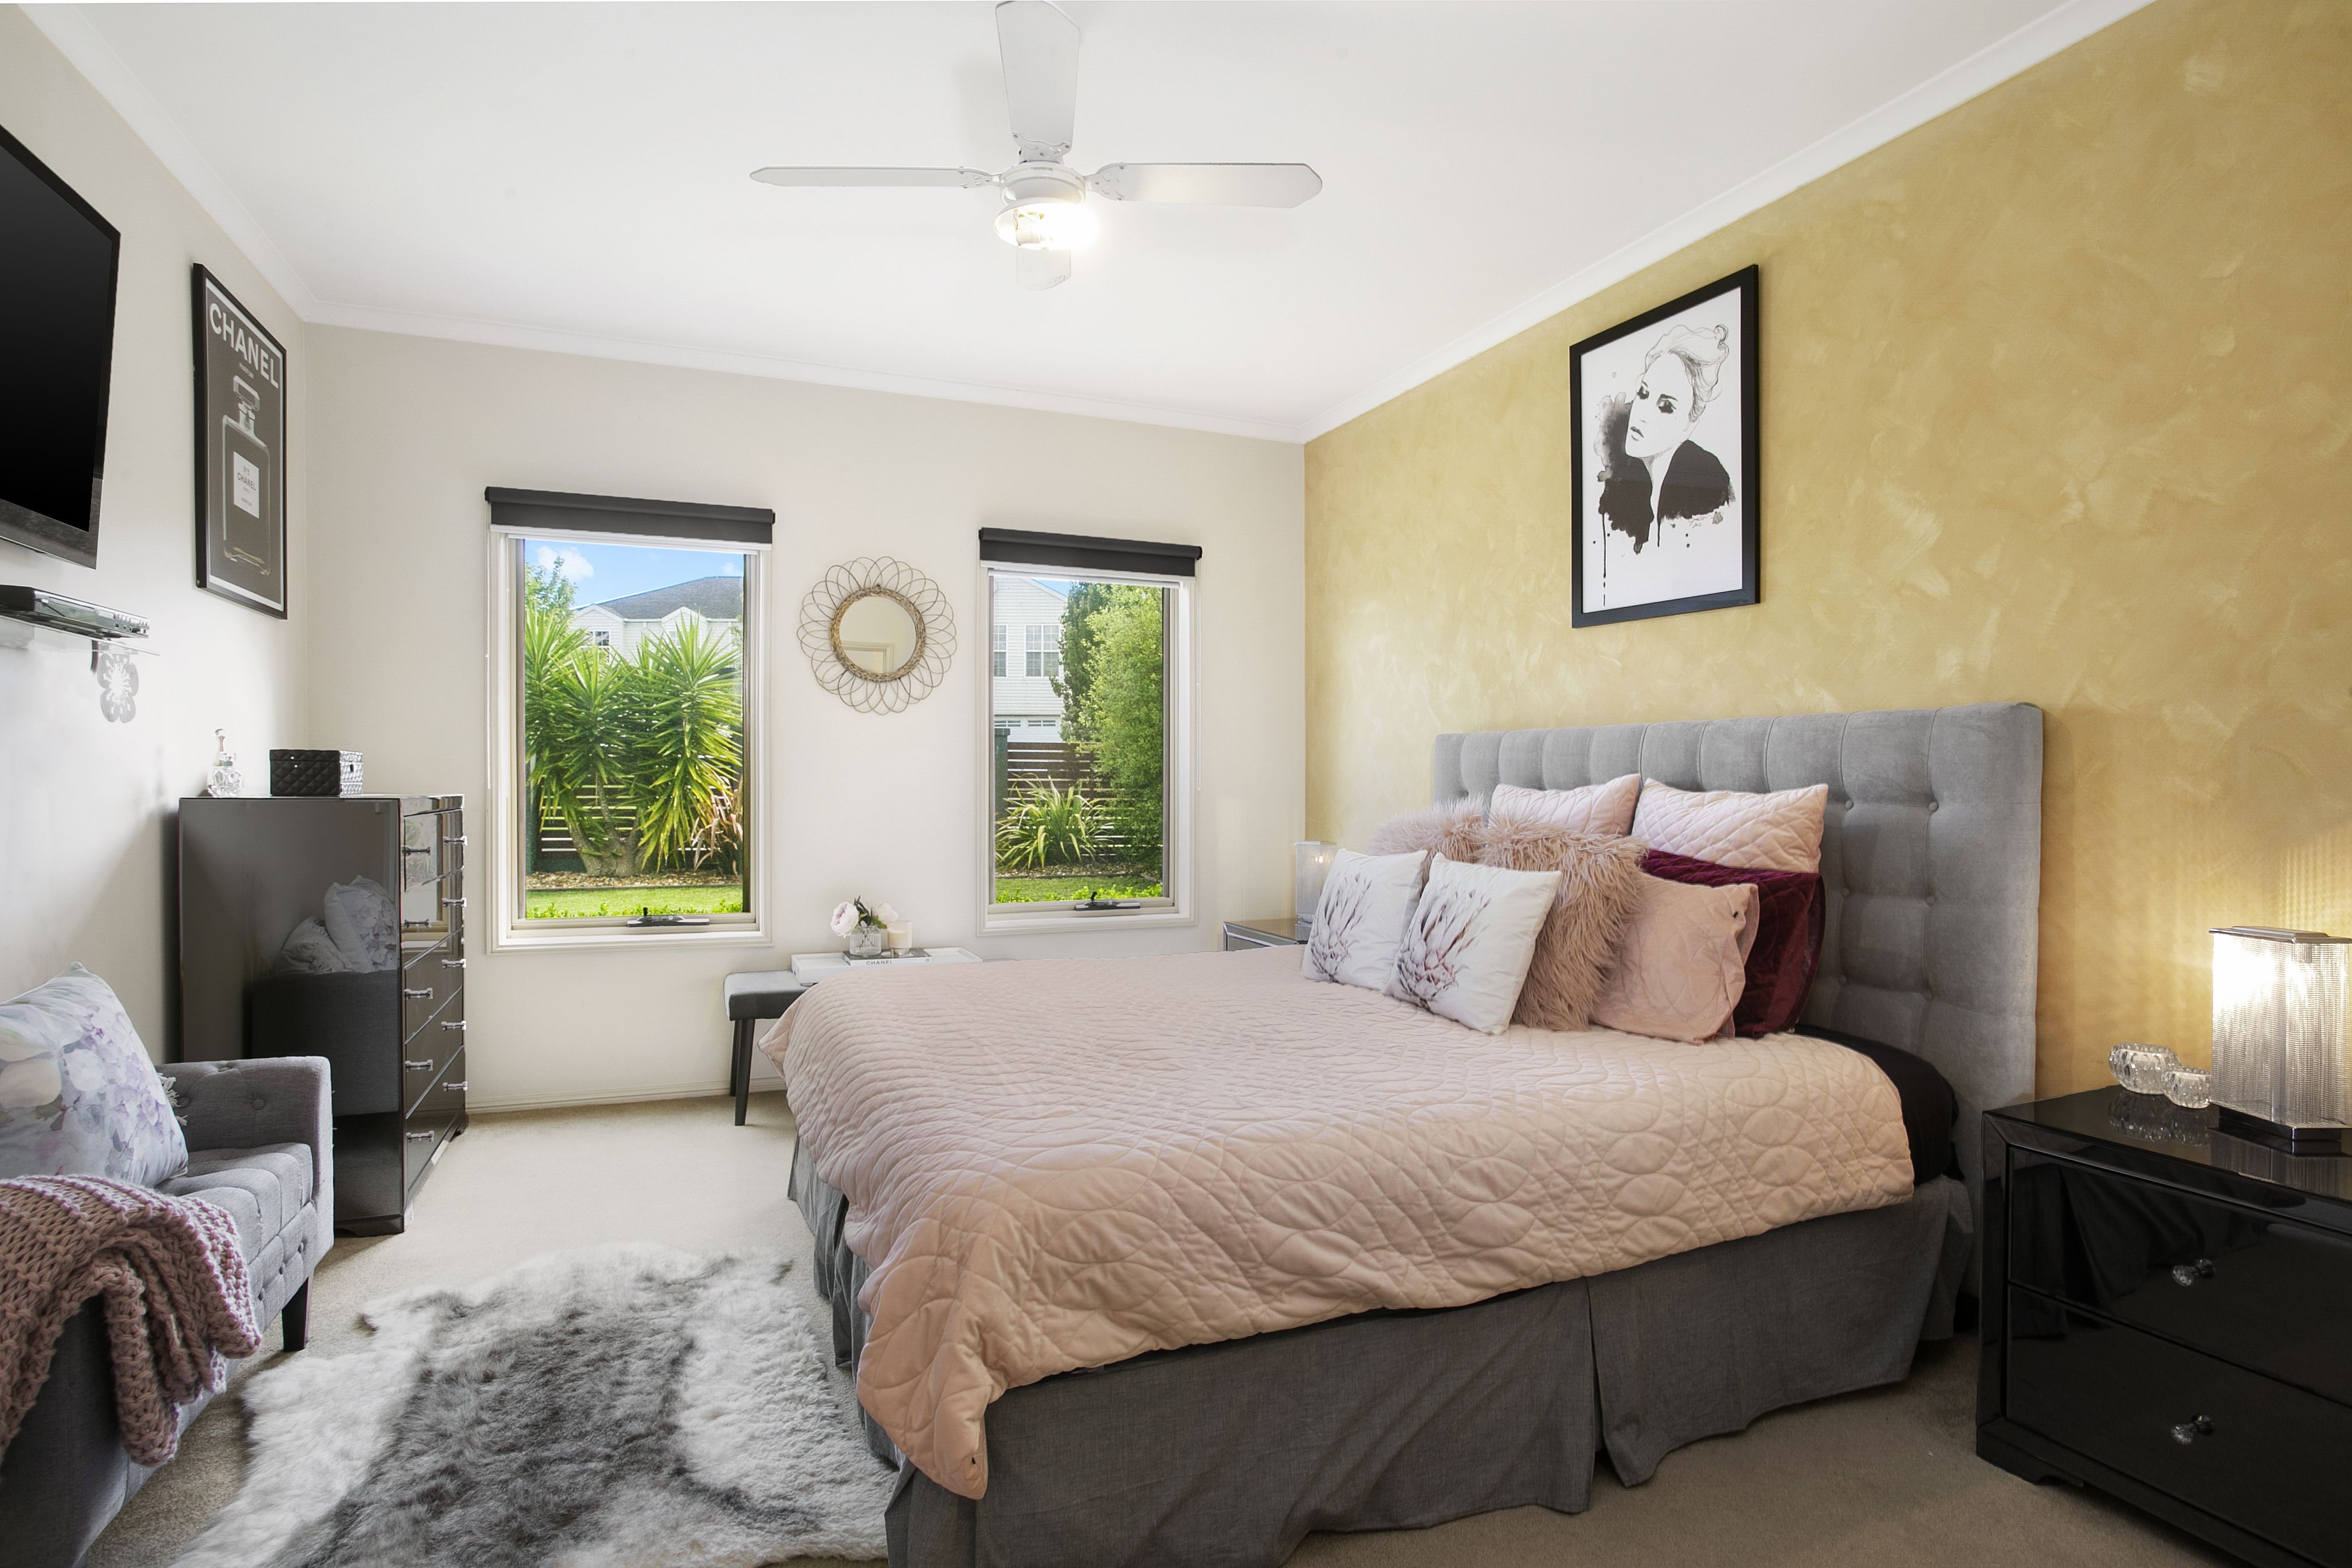 23-24 Peppermint Grove, Drysdale VIC 3222